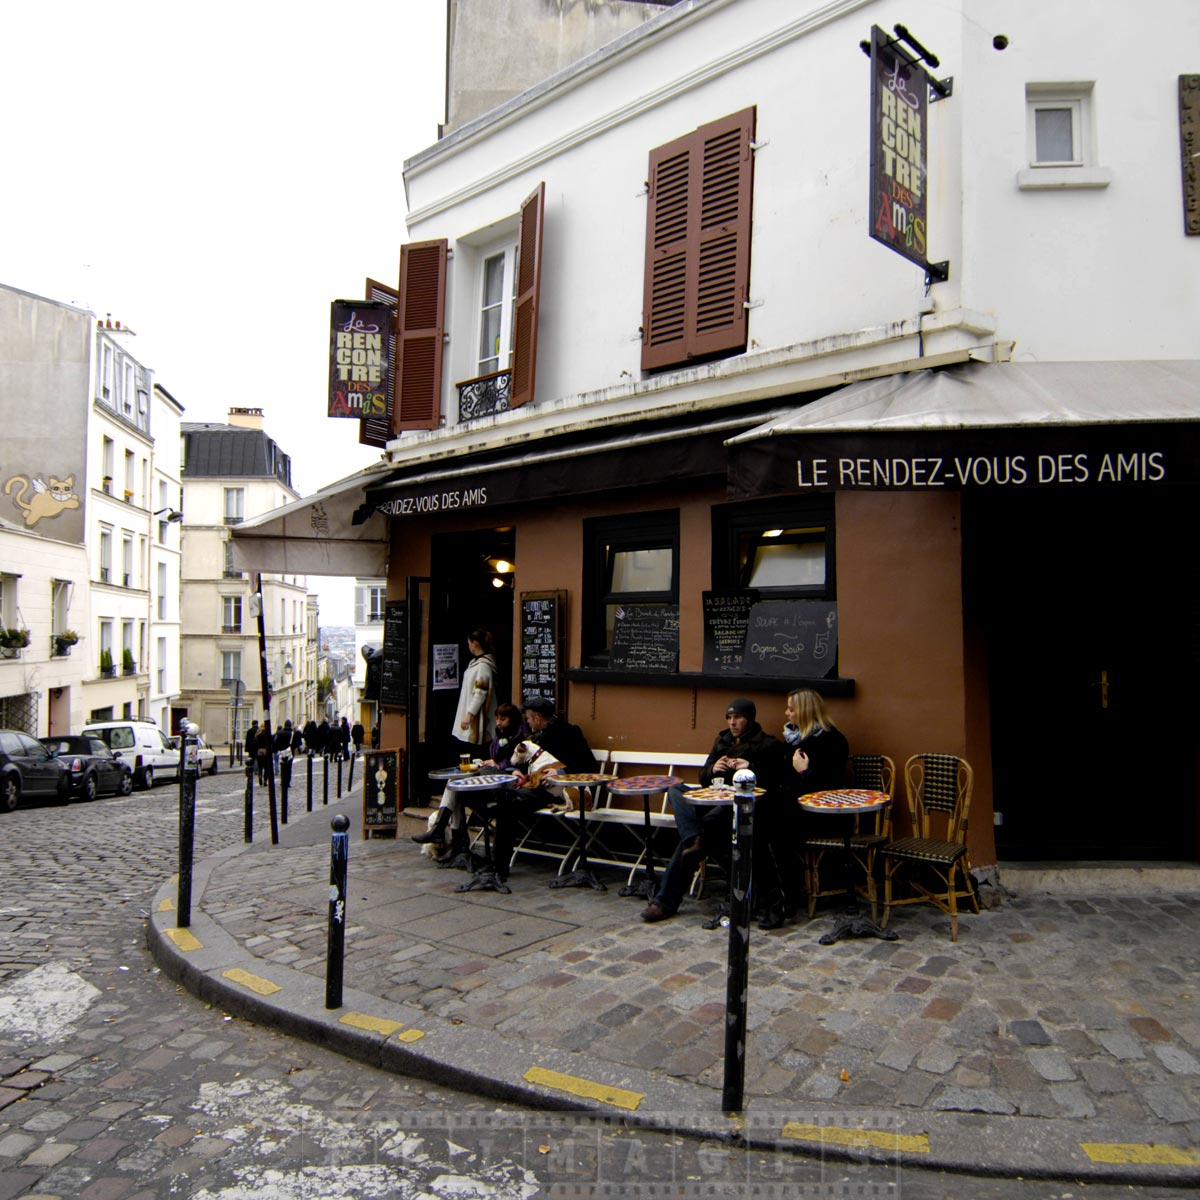 Couple enjoy coffee at a cute small restaurant in Montmarte